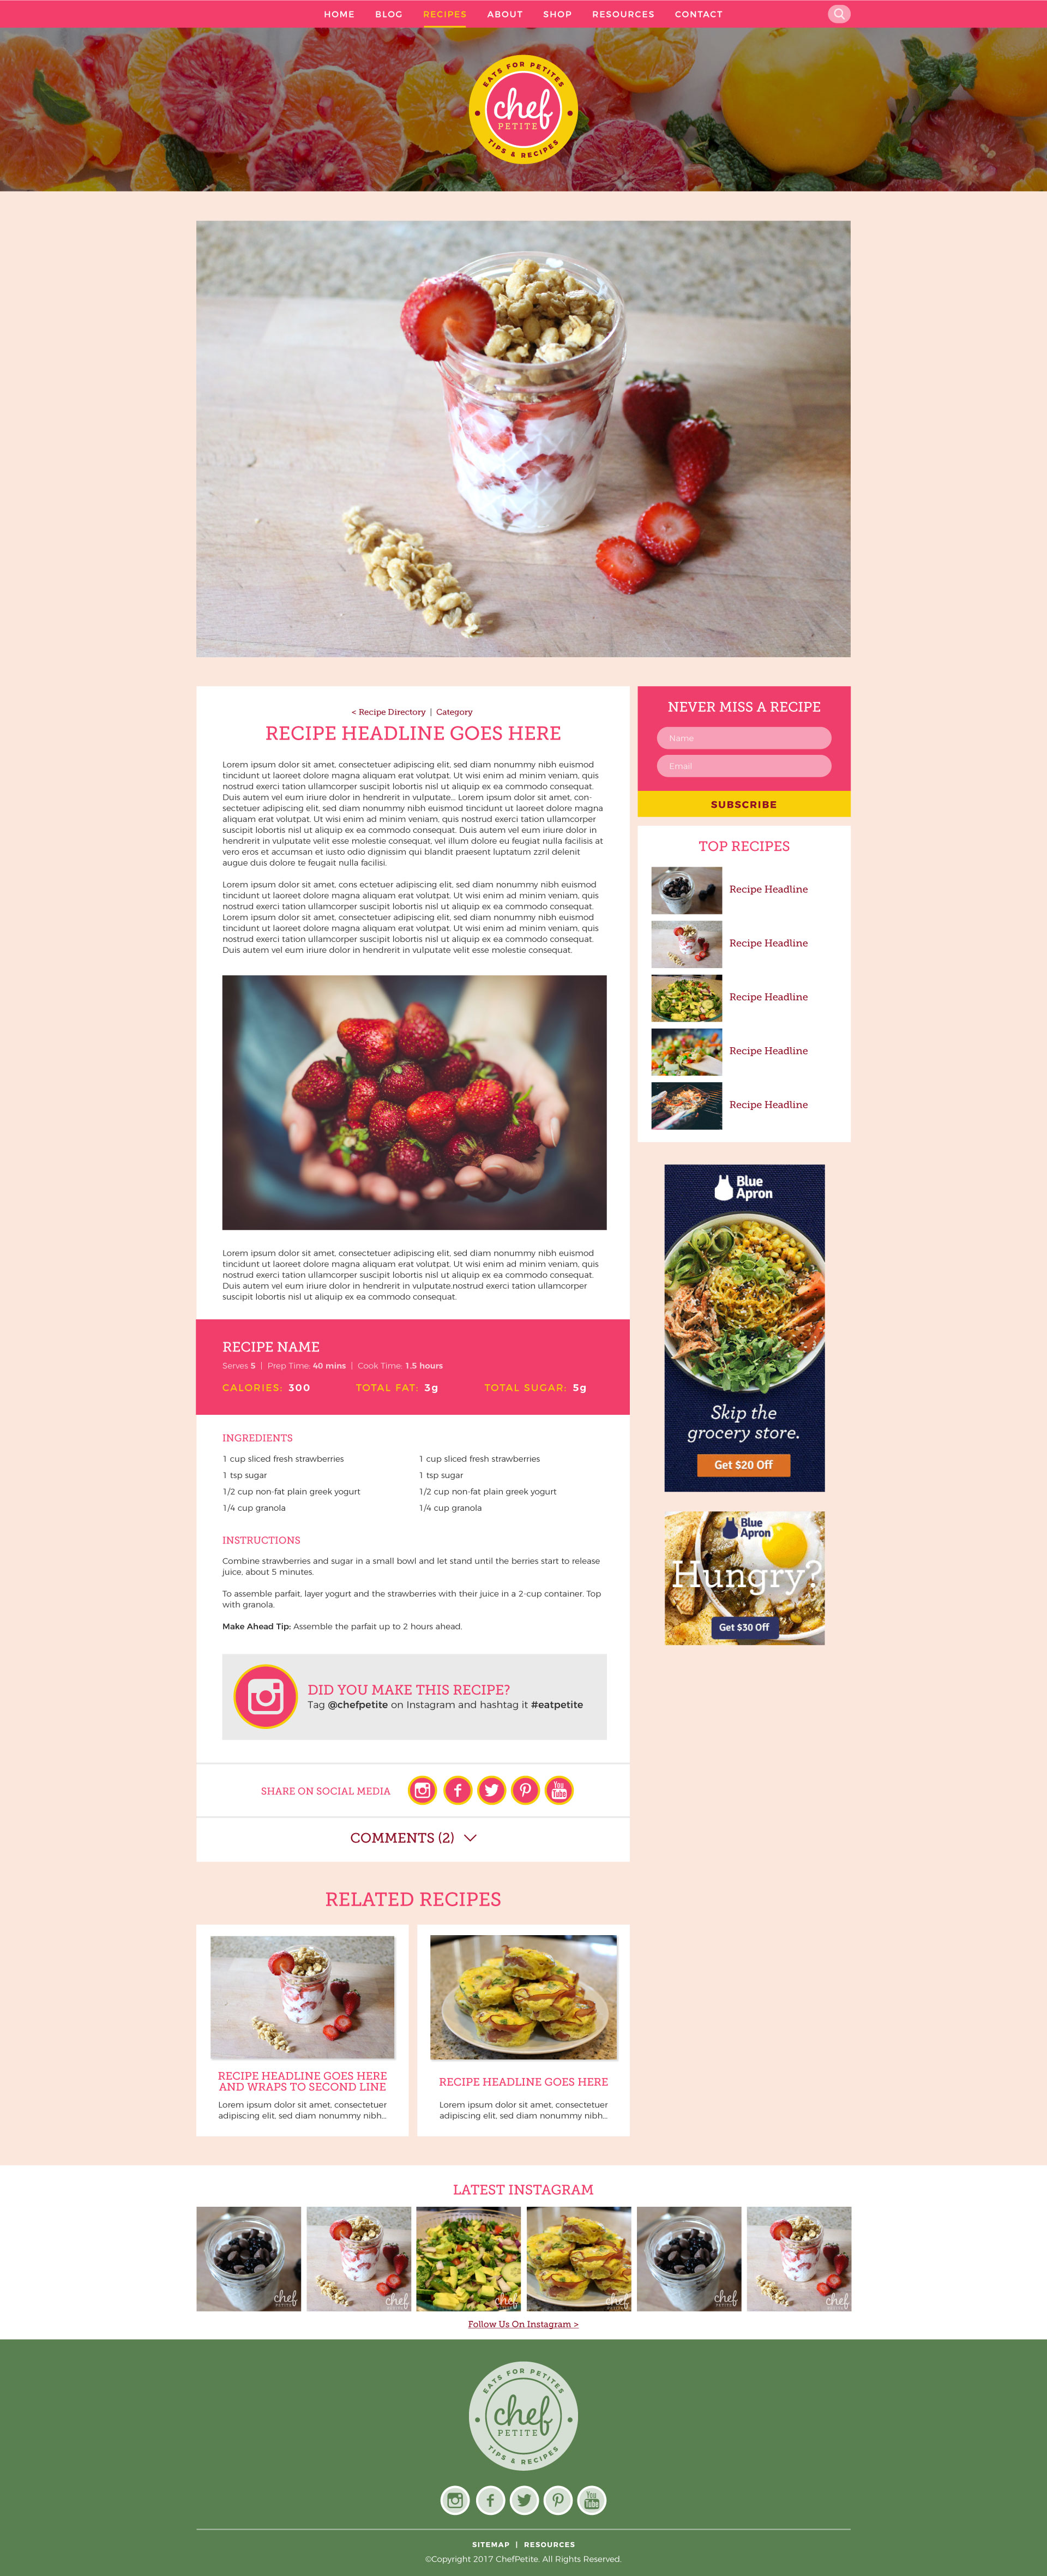 ChefPetite food blog design recipe post page